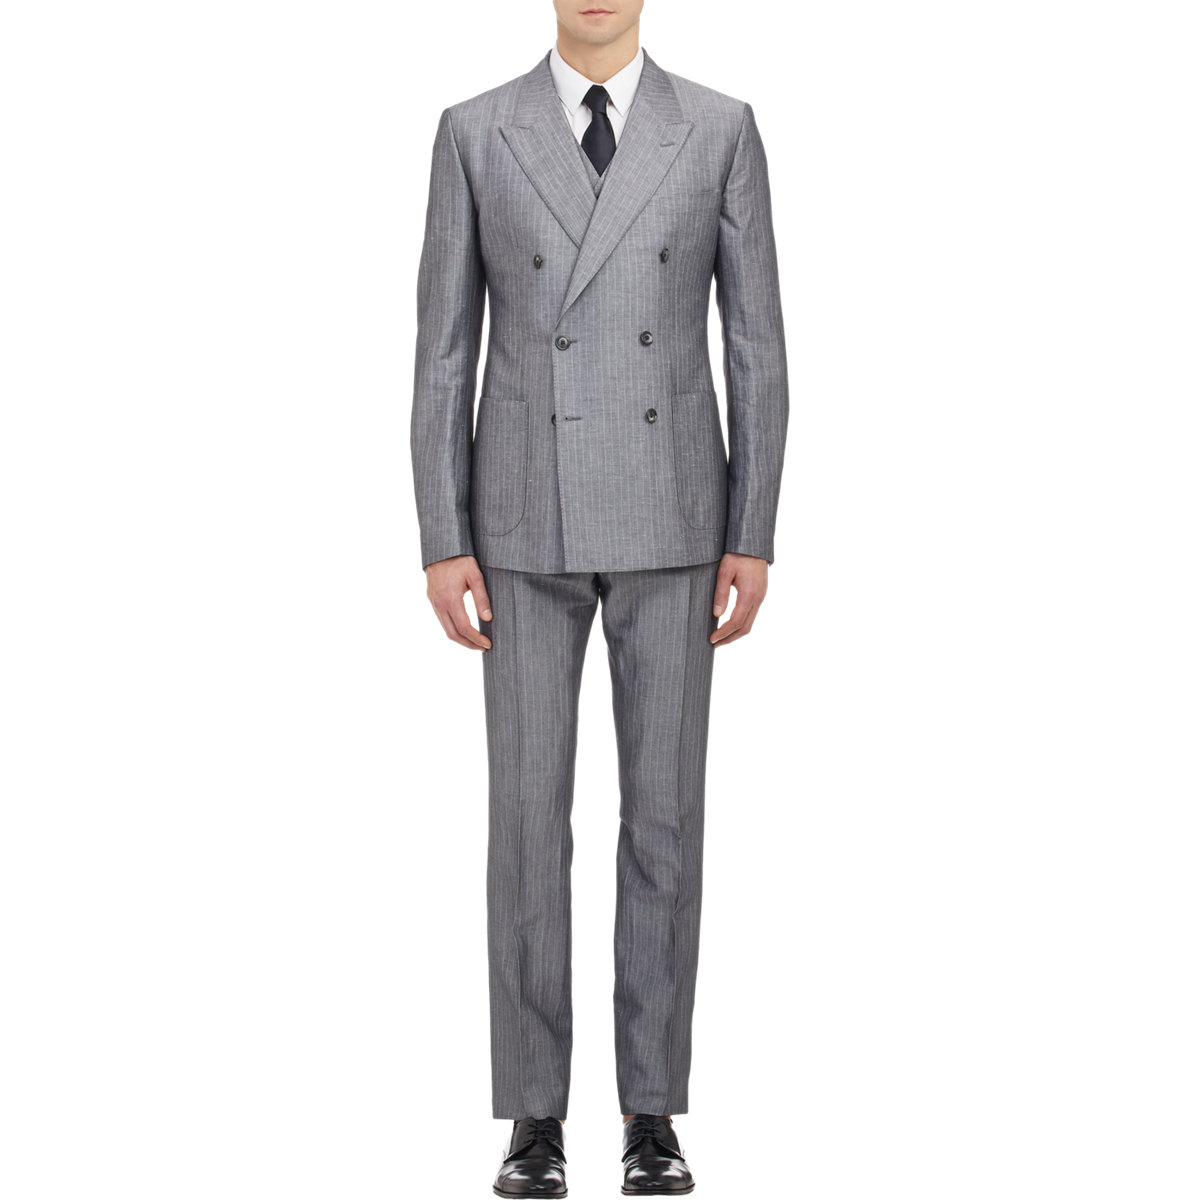 3 BUTTON SUITS ON SALE! Three button suits are one of the classic styles in mens suits as the style goes well for men of all body structure. A well-fitting three button suit .